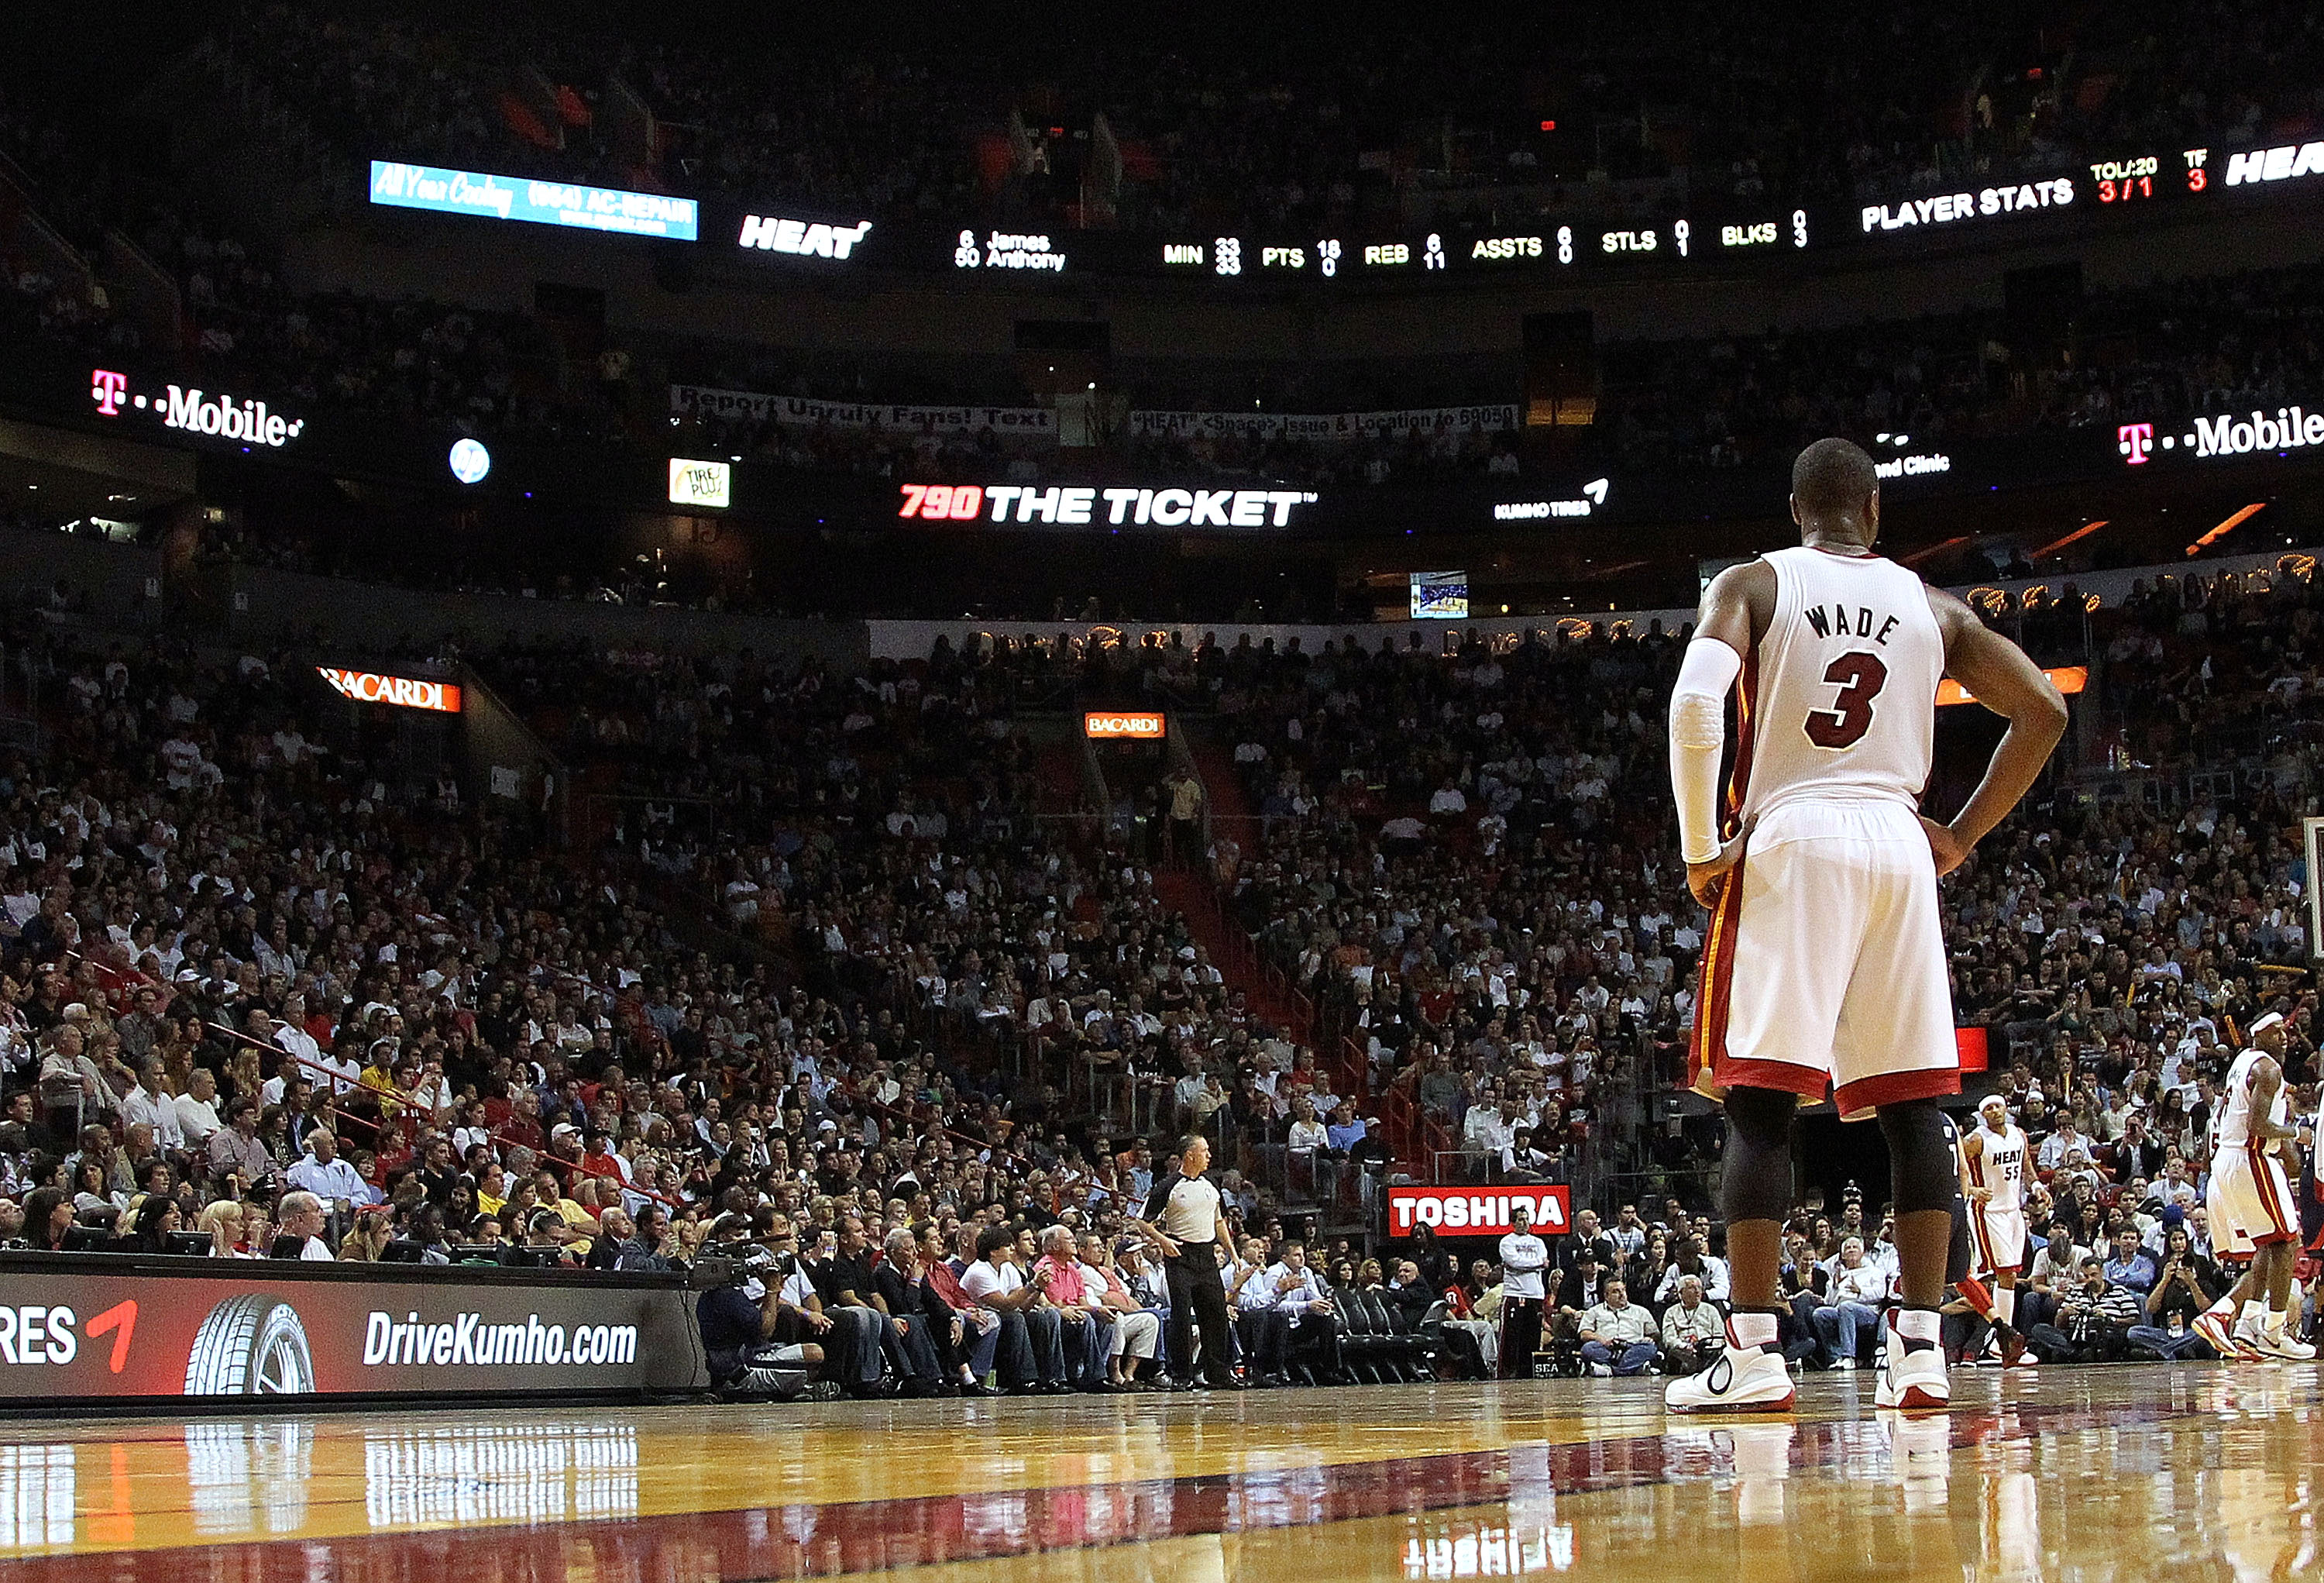 MIAMI, FL - JANUARY 18:  Dwyane Wade #3 of the Miami Heat looks on during a game against the Atlanta Hawks at American Airlines Arena on January 18, 2011 in Miami, Florida. NOTE TO USER: User expressly acknowledges and agrees that, by downloading and/or u